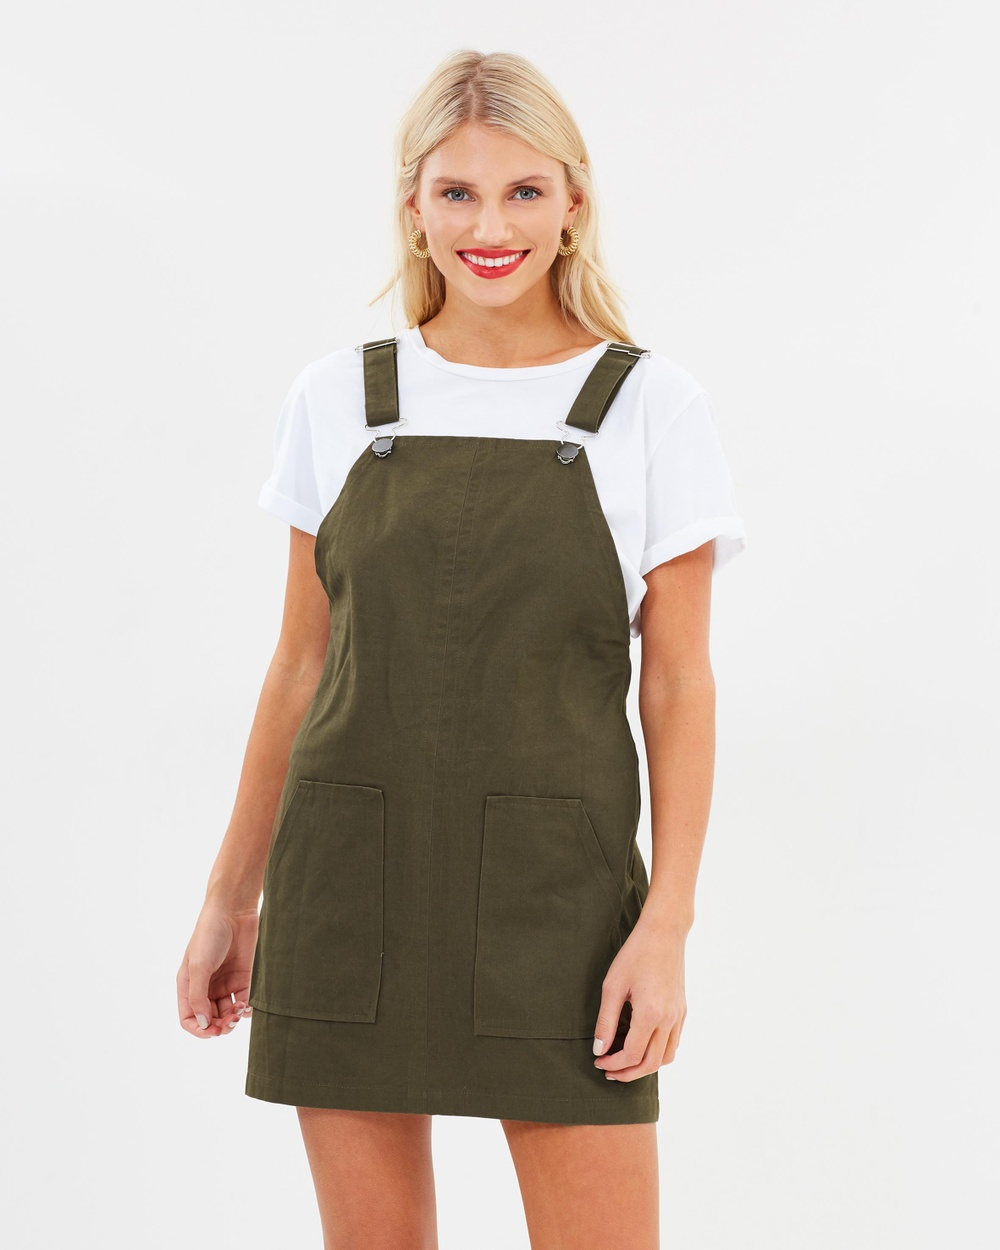 Atmos & Here Khaki ICONIC EXCLUSIVE – Atomic Pinafore Dress